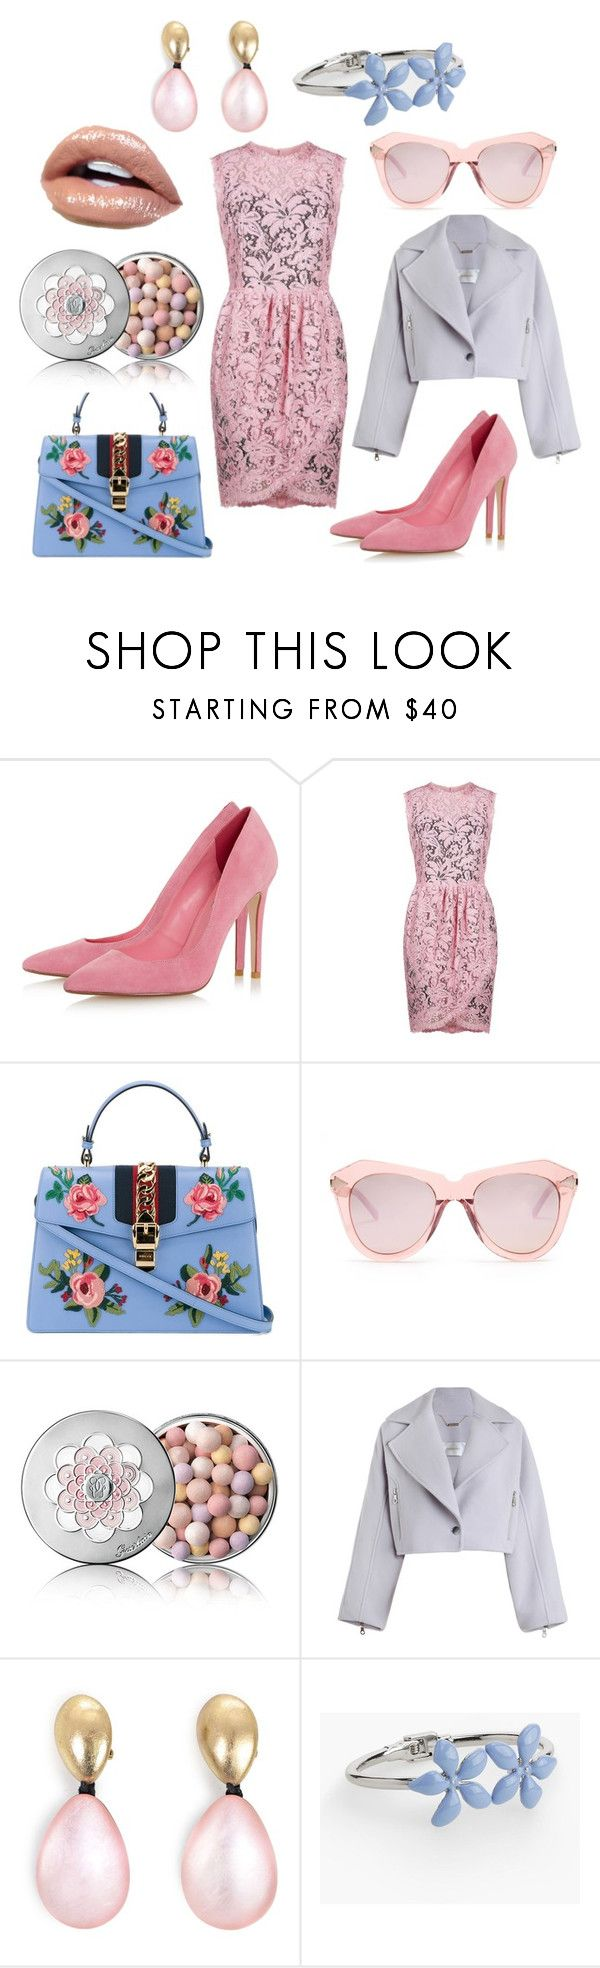 """Романтика"" by evavendoc on Polyvore featuring мода, Dolce&Gabbana, Gucci, Karen Walker, Guerlain, Zimmermann, Monies и Talbots"